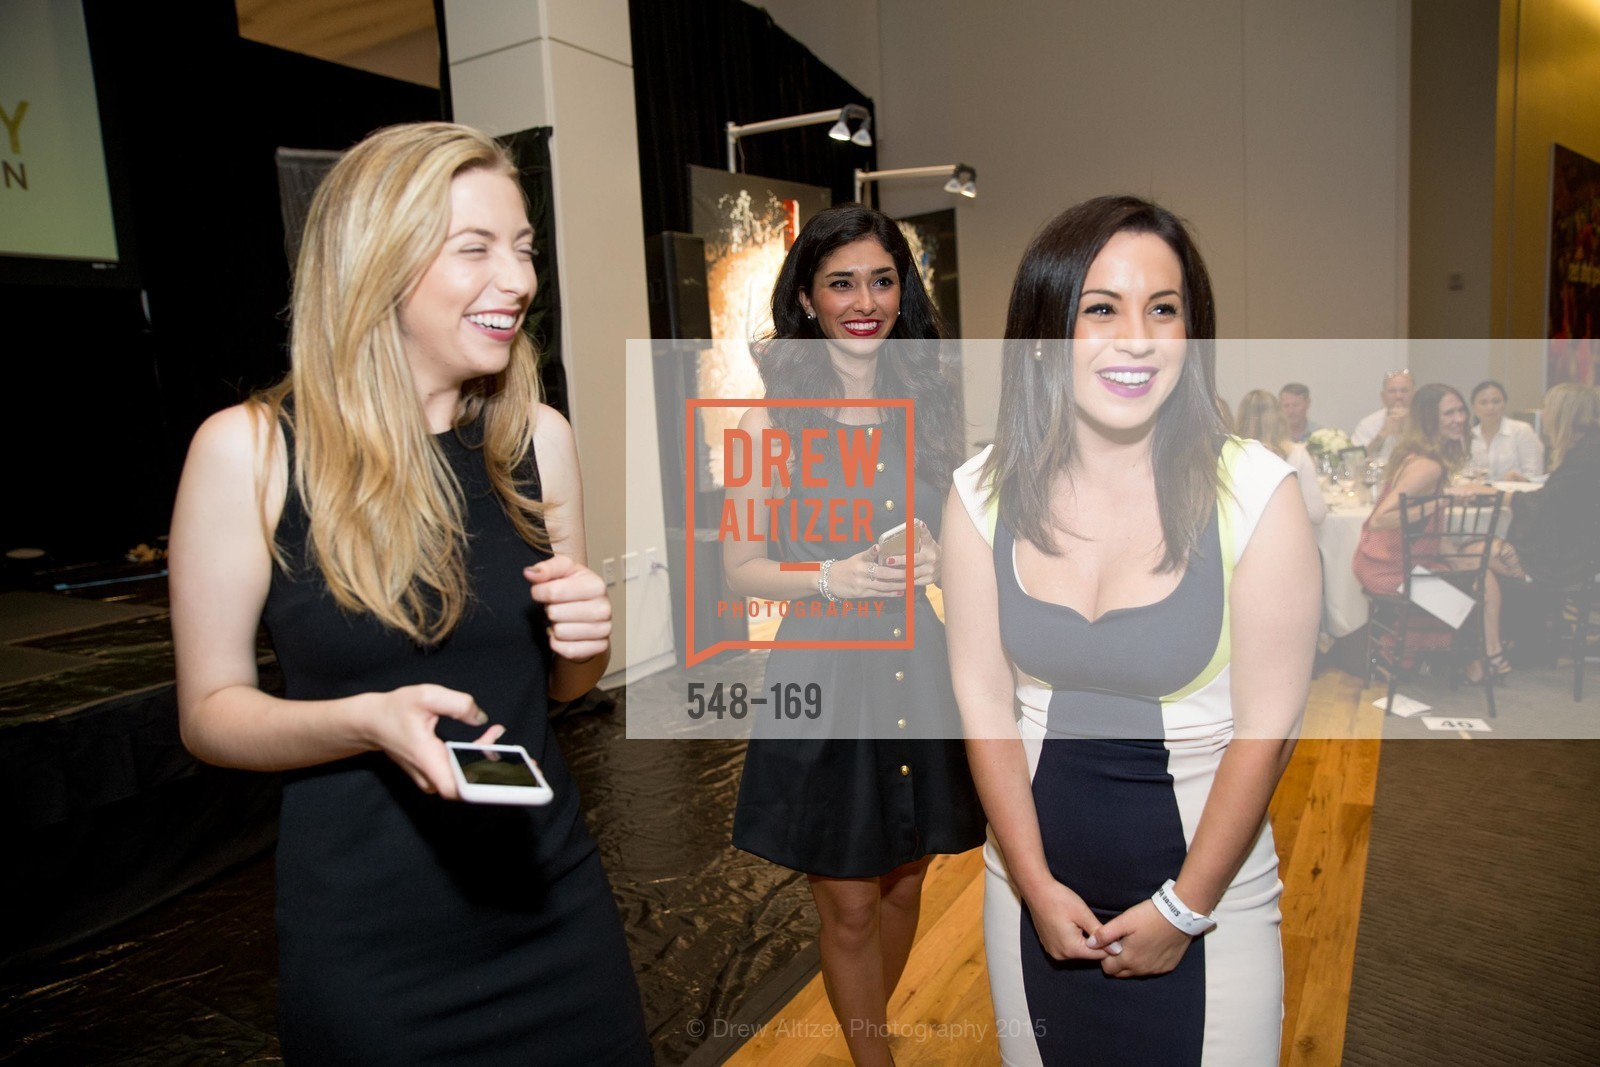 Jennifer Riland, Salma Perdowski, Veronica Gonzalez, Silicon Valley Wine Auction Benefiting Silicon Valley Education Foundation, Levi's Stadium. 4900 Marie P. DeBartolo Way, June 19th, 2015,Drew Altizer, Drew Altizer Photography, full-service agency, private events, San Francisco photographer, photographer california